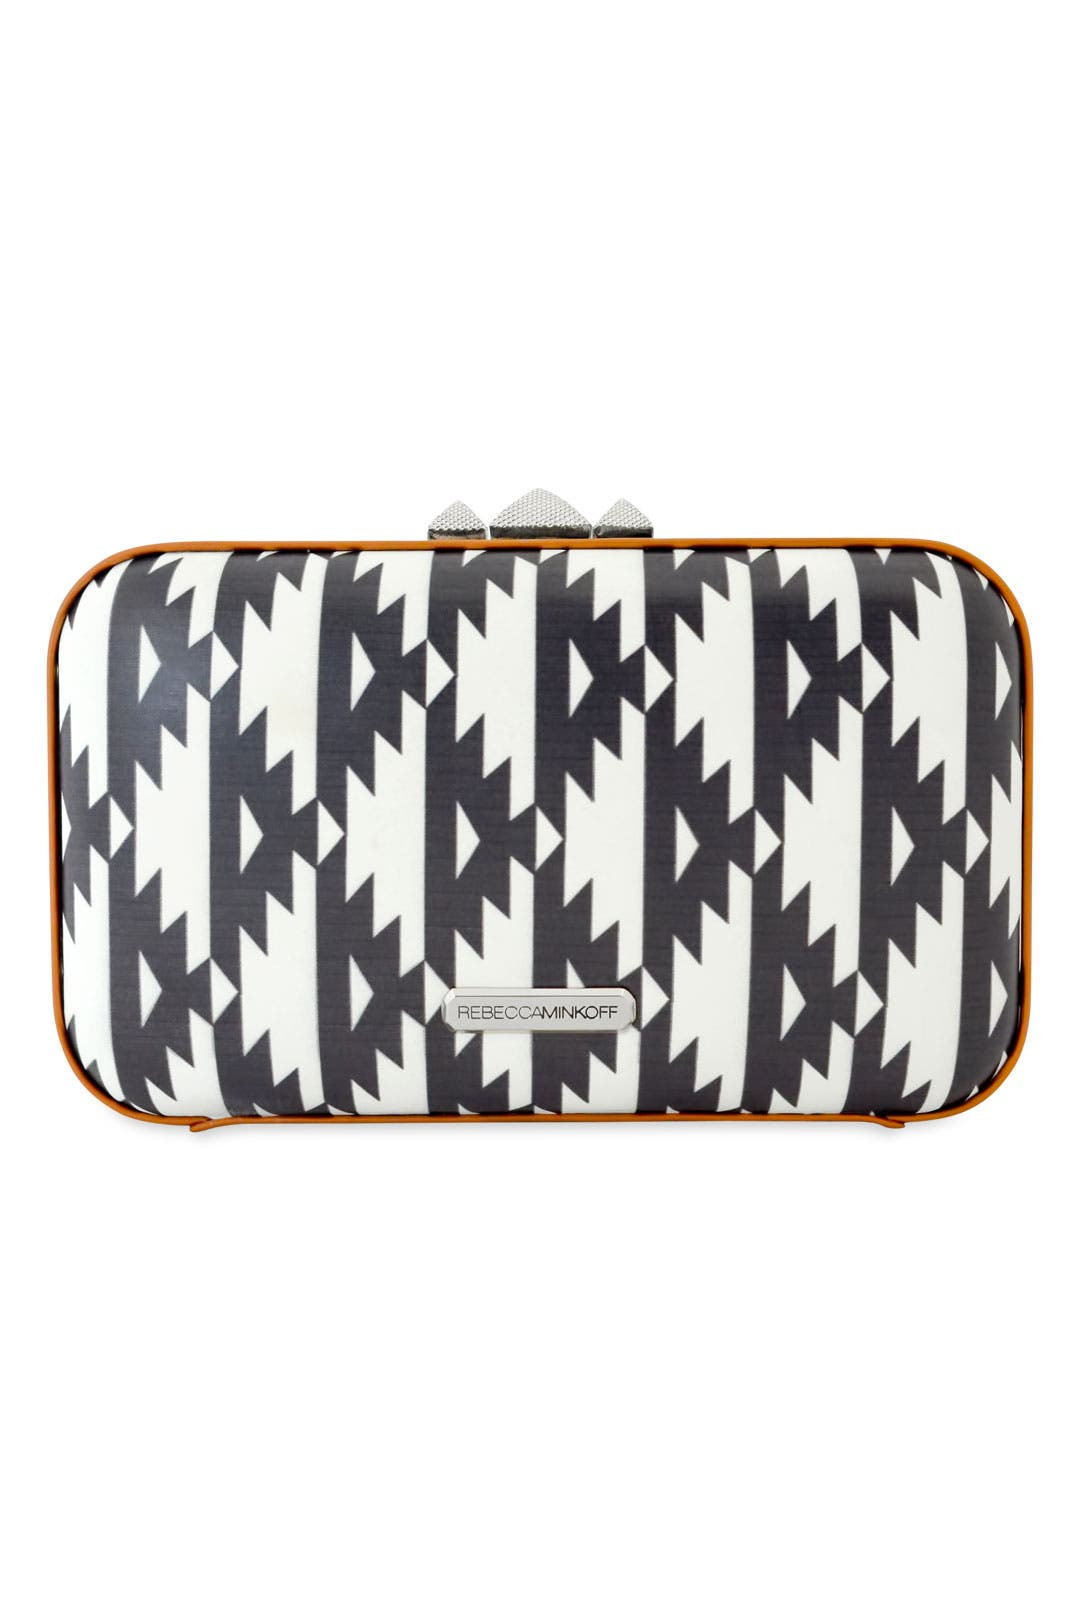 Navajo Adventure Clutch by Rebecca Minkoff Handbags